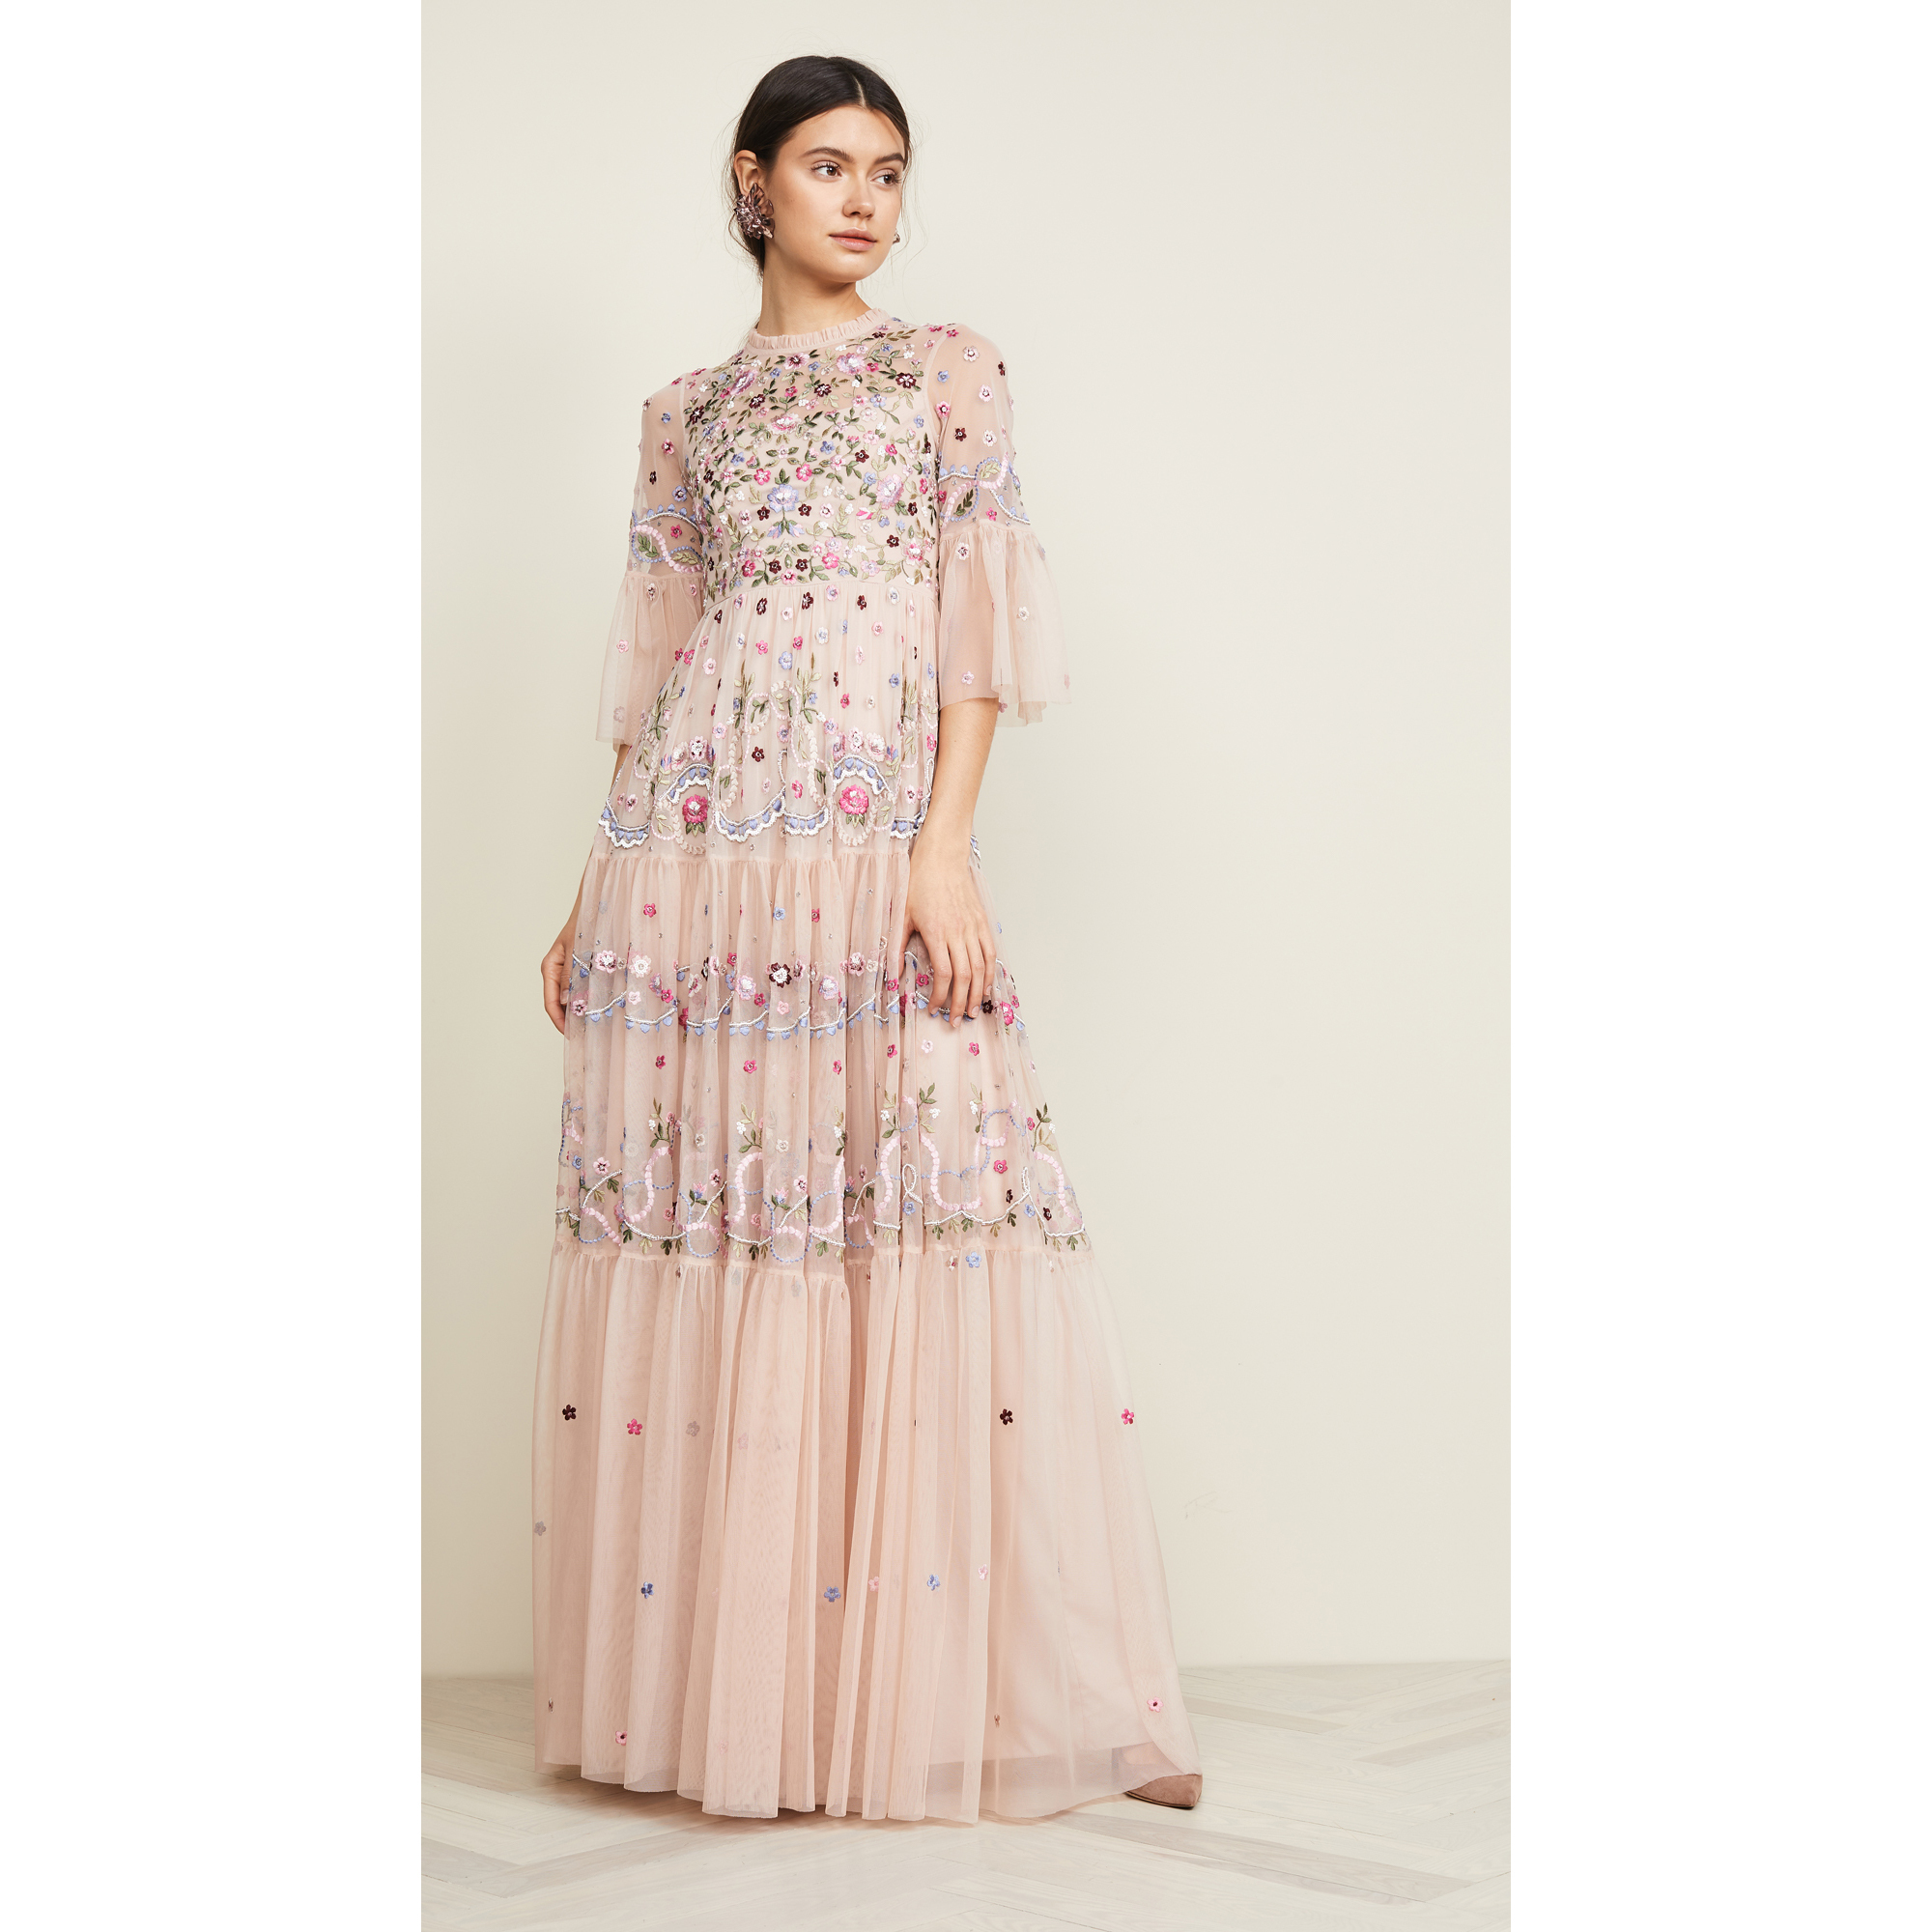 361d8c177199 Rose Wedding Gown: Needle & Thread Dreamers Lace Gown in Rose Quartz